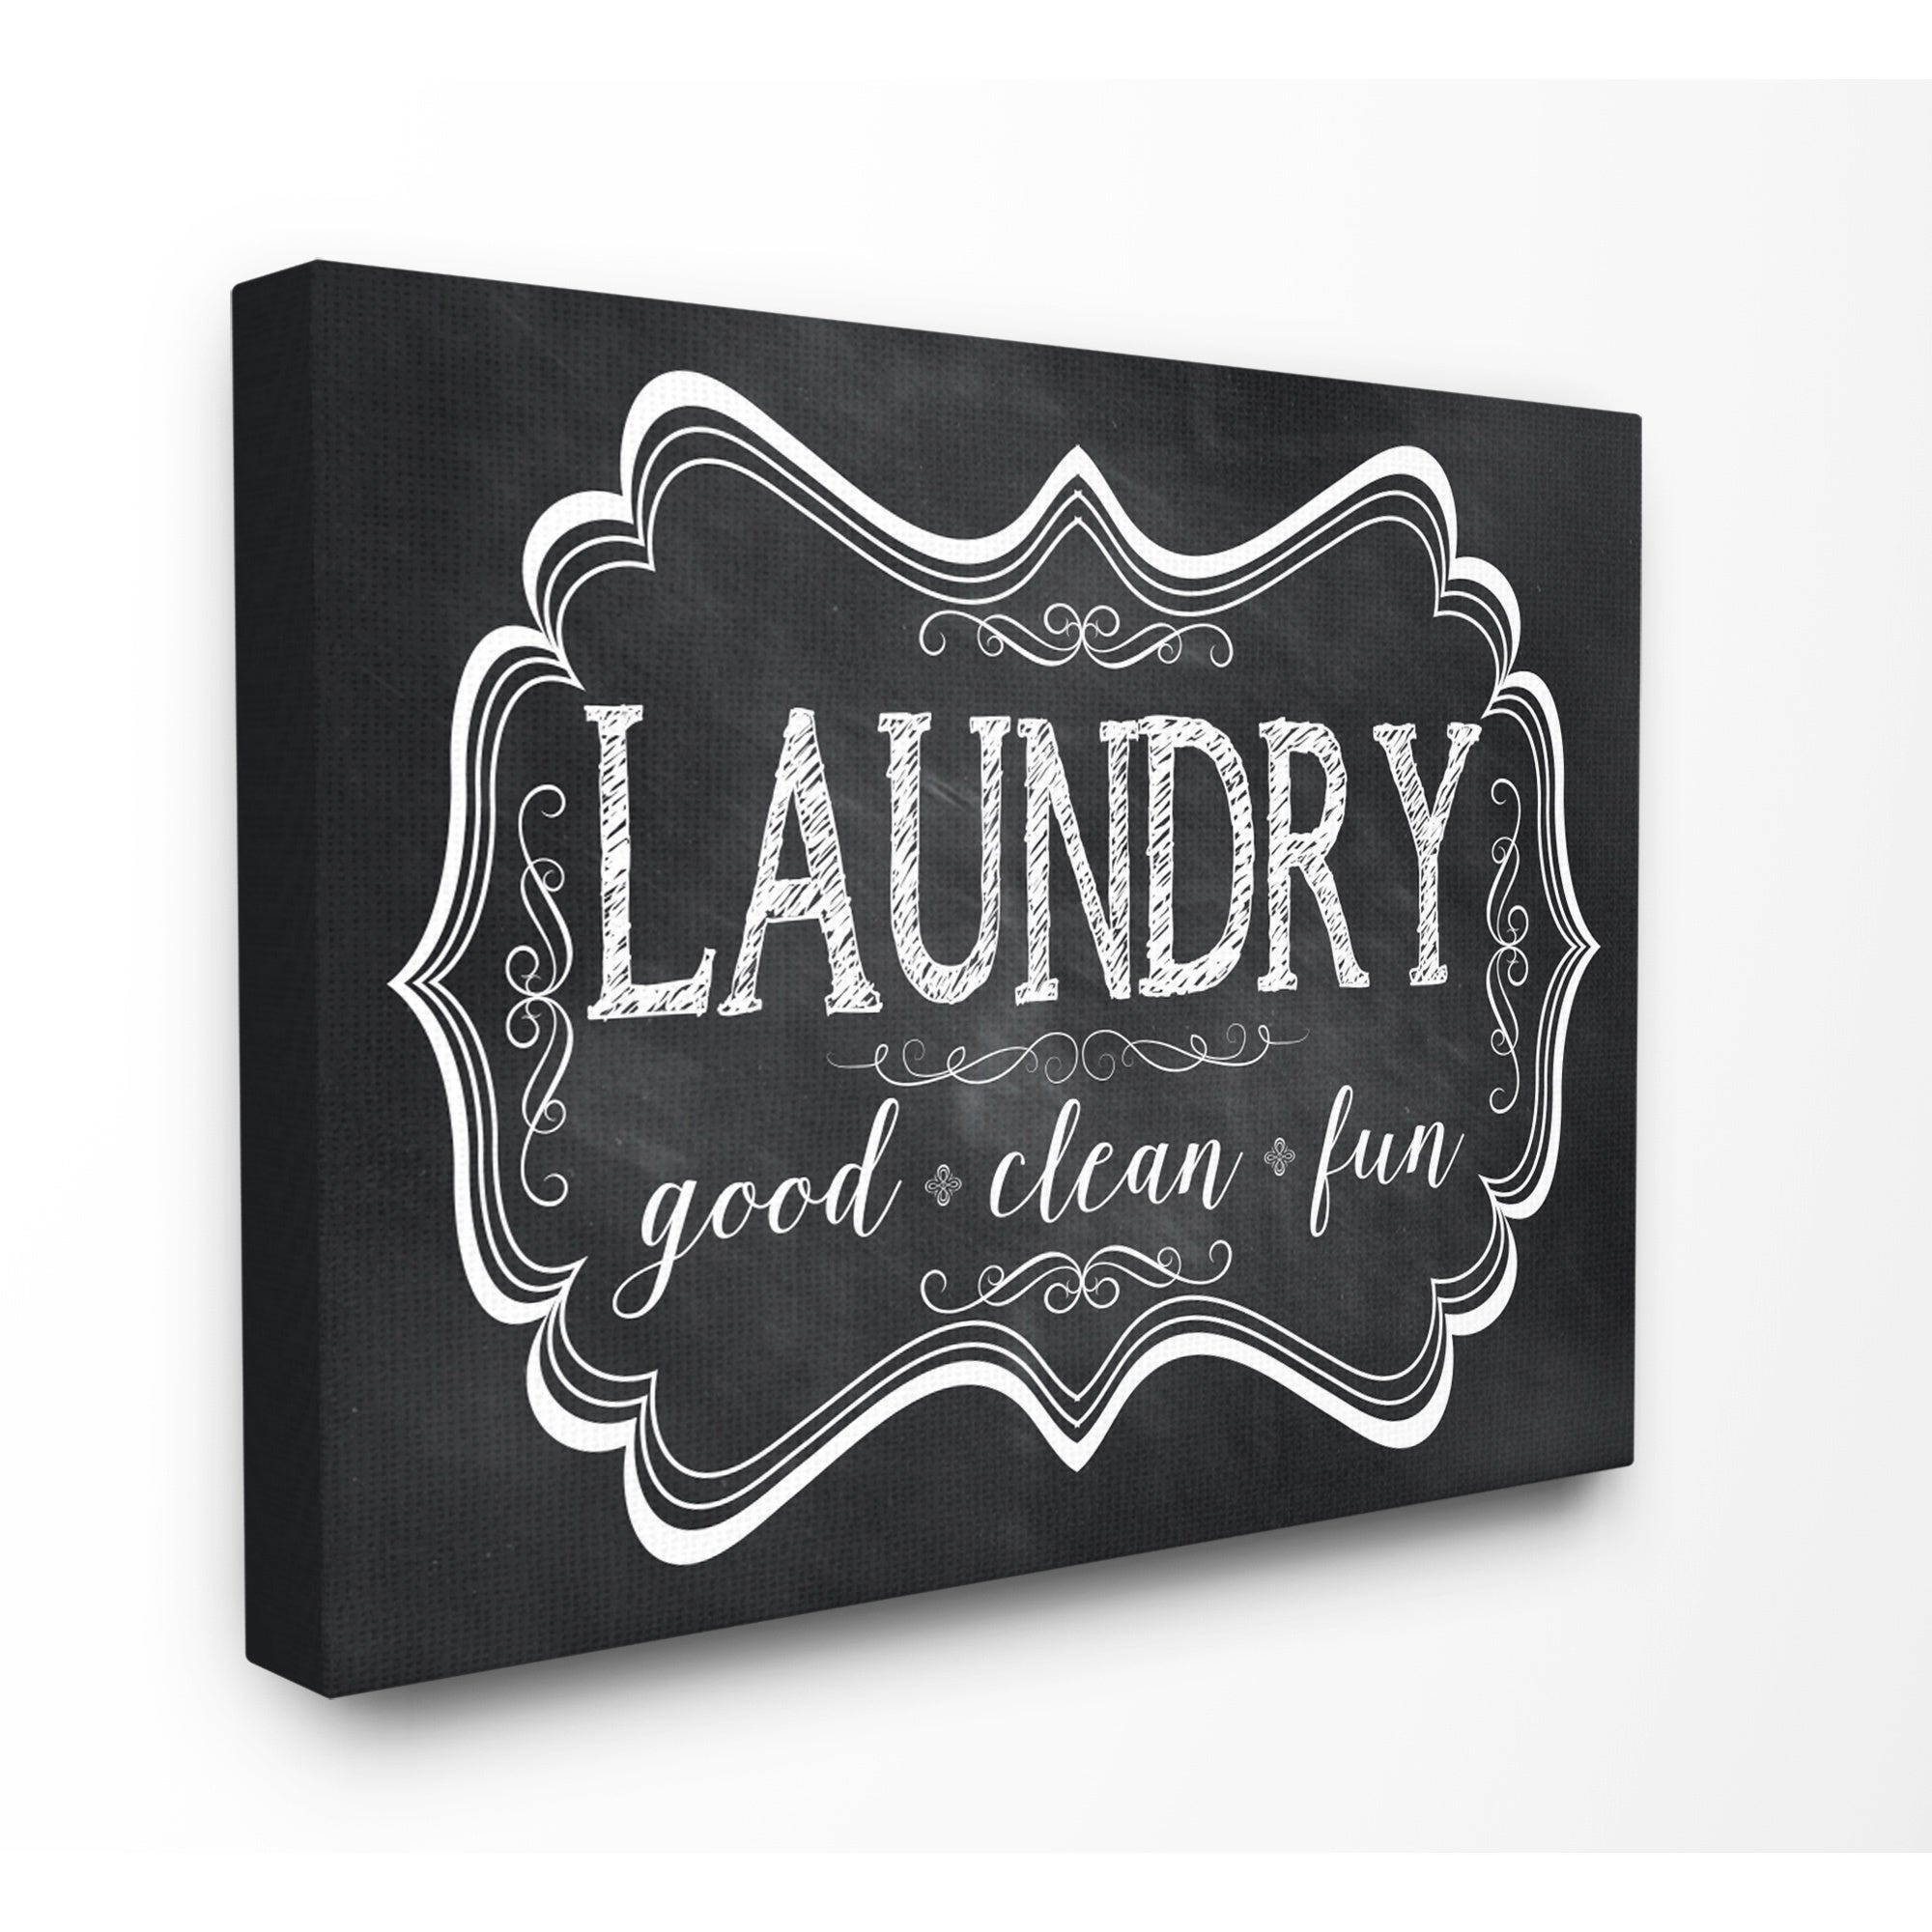 Laundry Wall Plaque Stunning Laundry Good Clean Fun' Chalkboardlook Wall Plaque Art  Free Decorating Inspiration